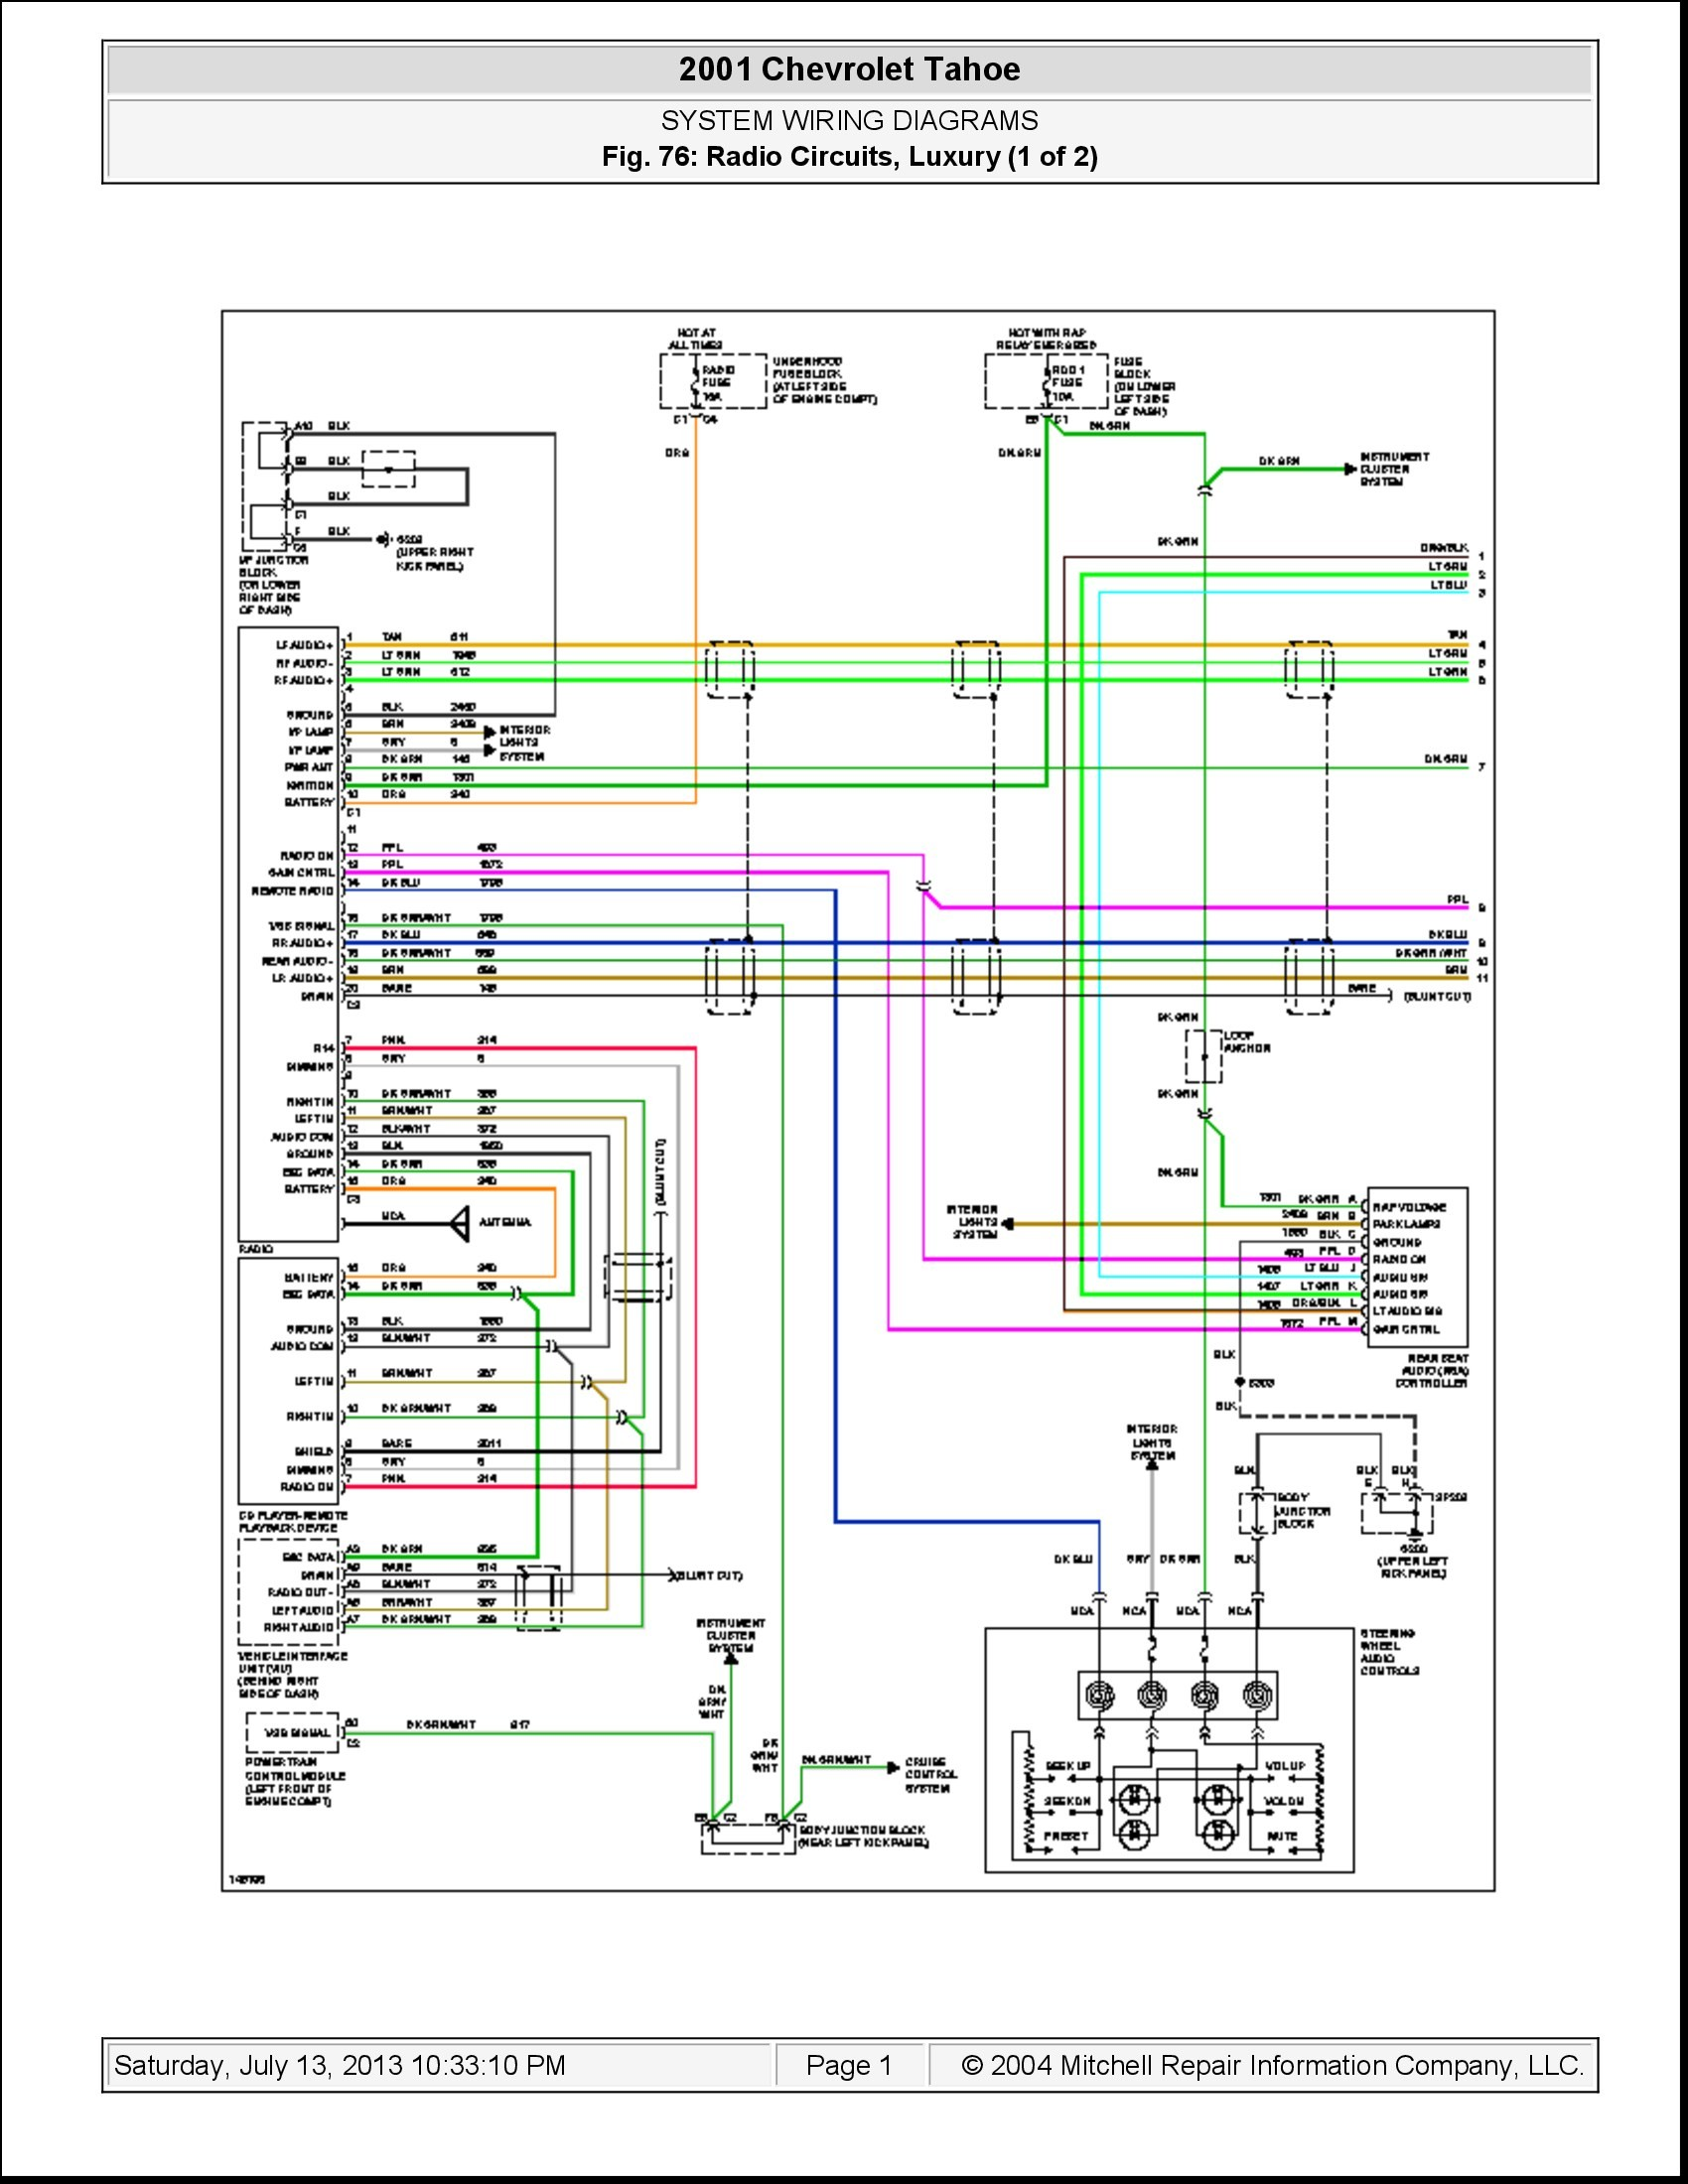 sbc wiring diagram 2003 volkswagen jetta parts chevy venture awesome gm radio